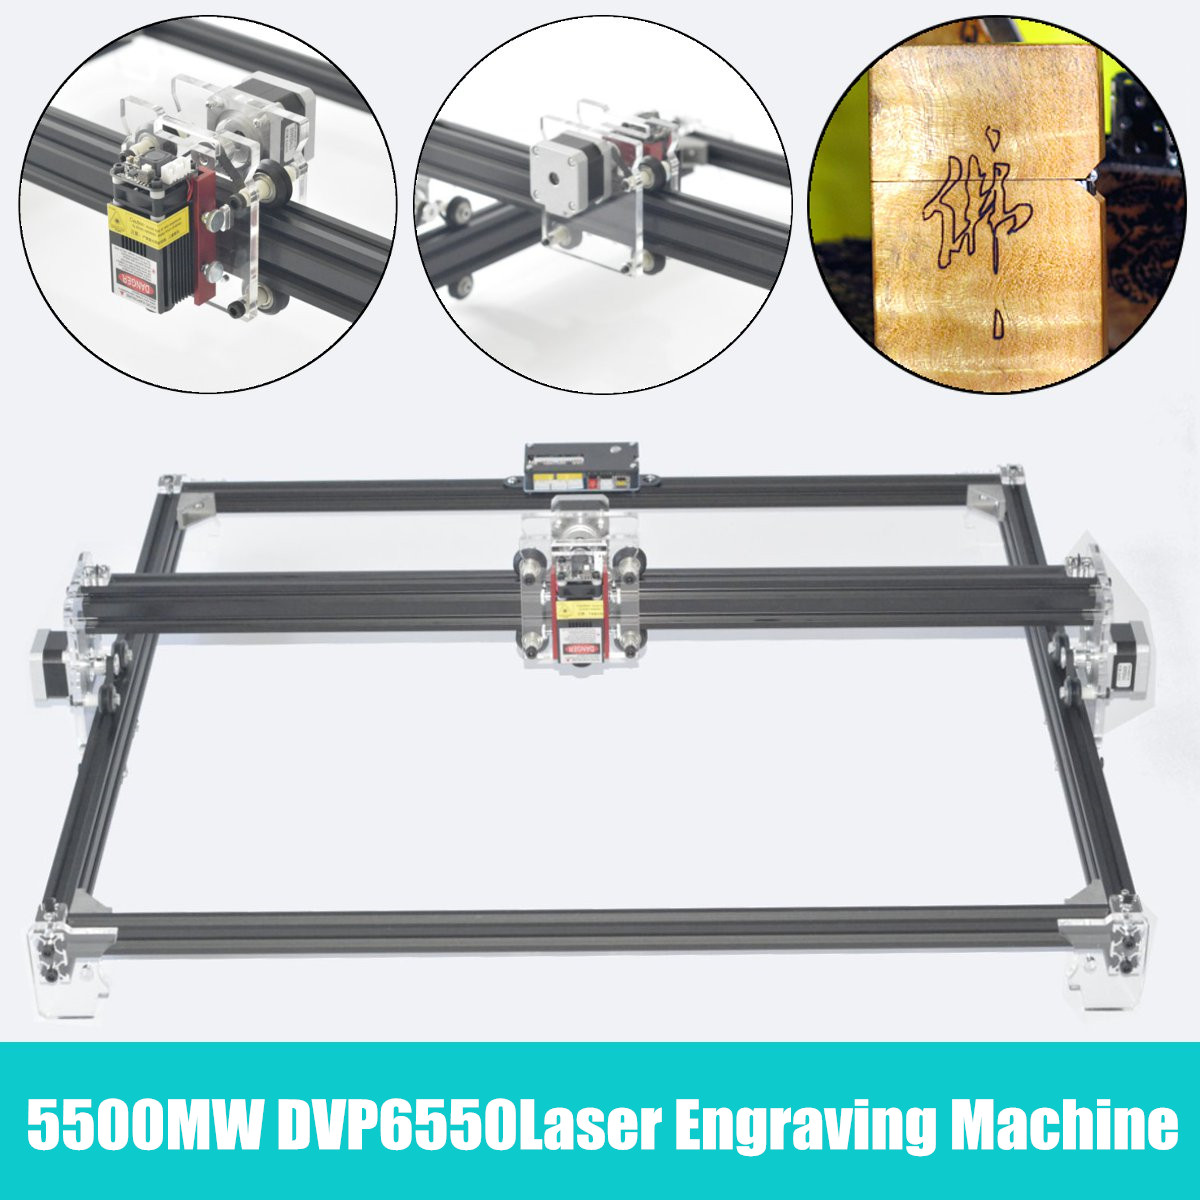 5500mw 2-Axis DVP 6550 Laser Engraving Machine,Wood Router,laser cutter,DIY Laser Engraver Machine,CNC Router,best Advanced toys цены